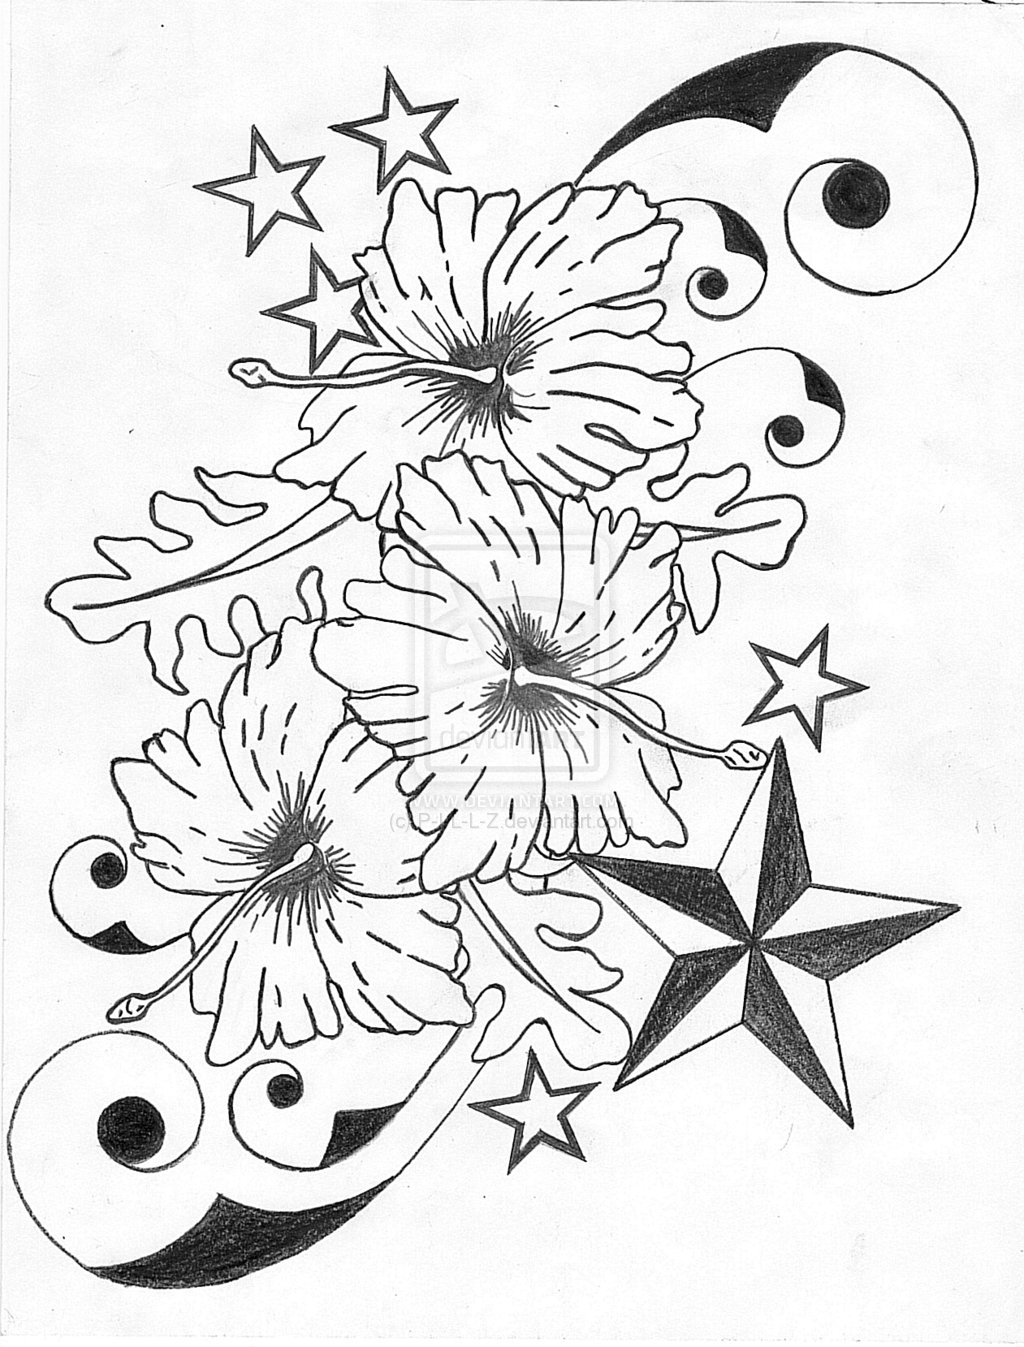 Nautical Star Drawing at GetDrawings.com | Free for personal use ...